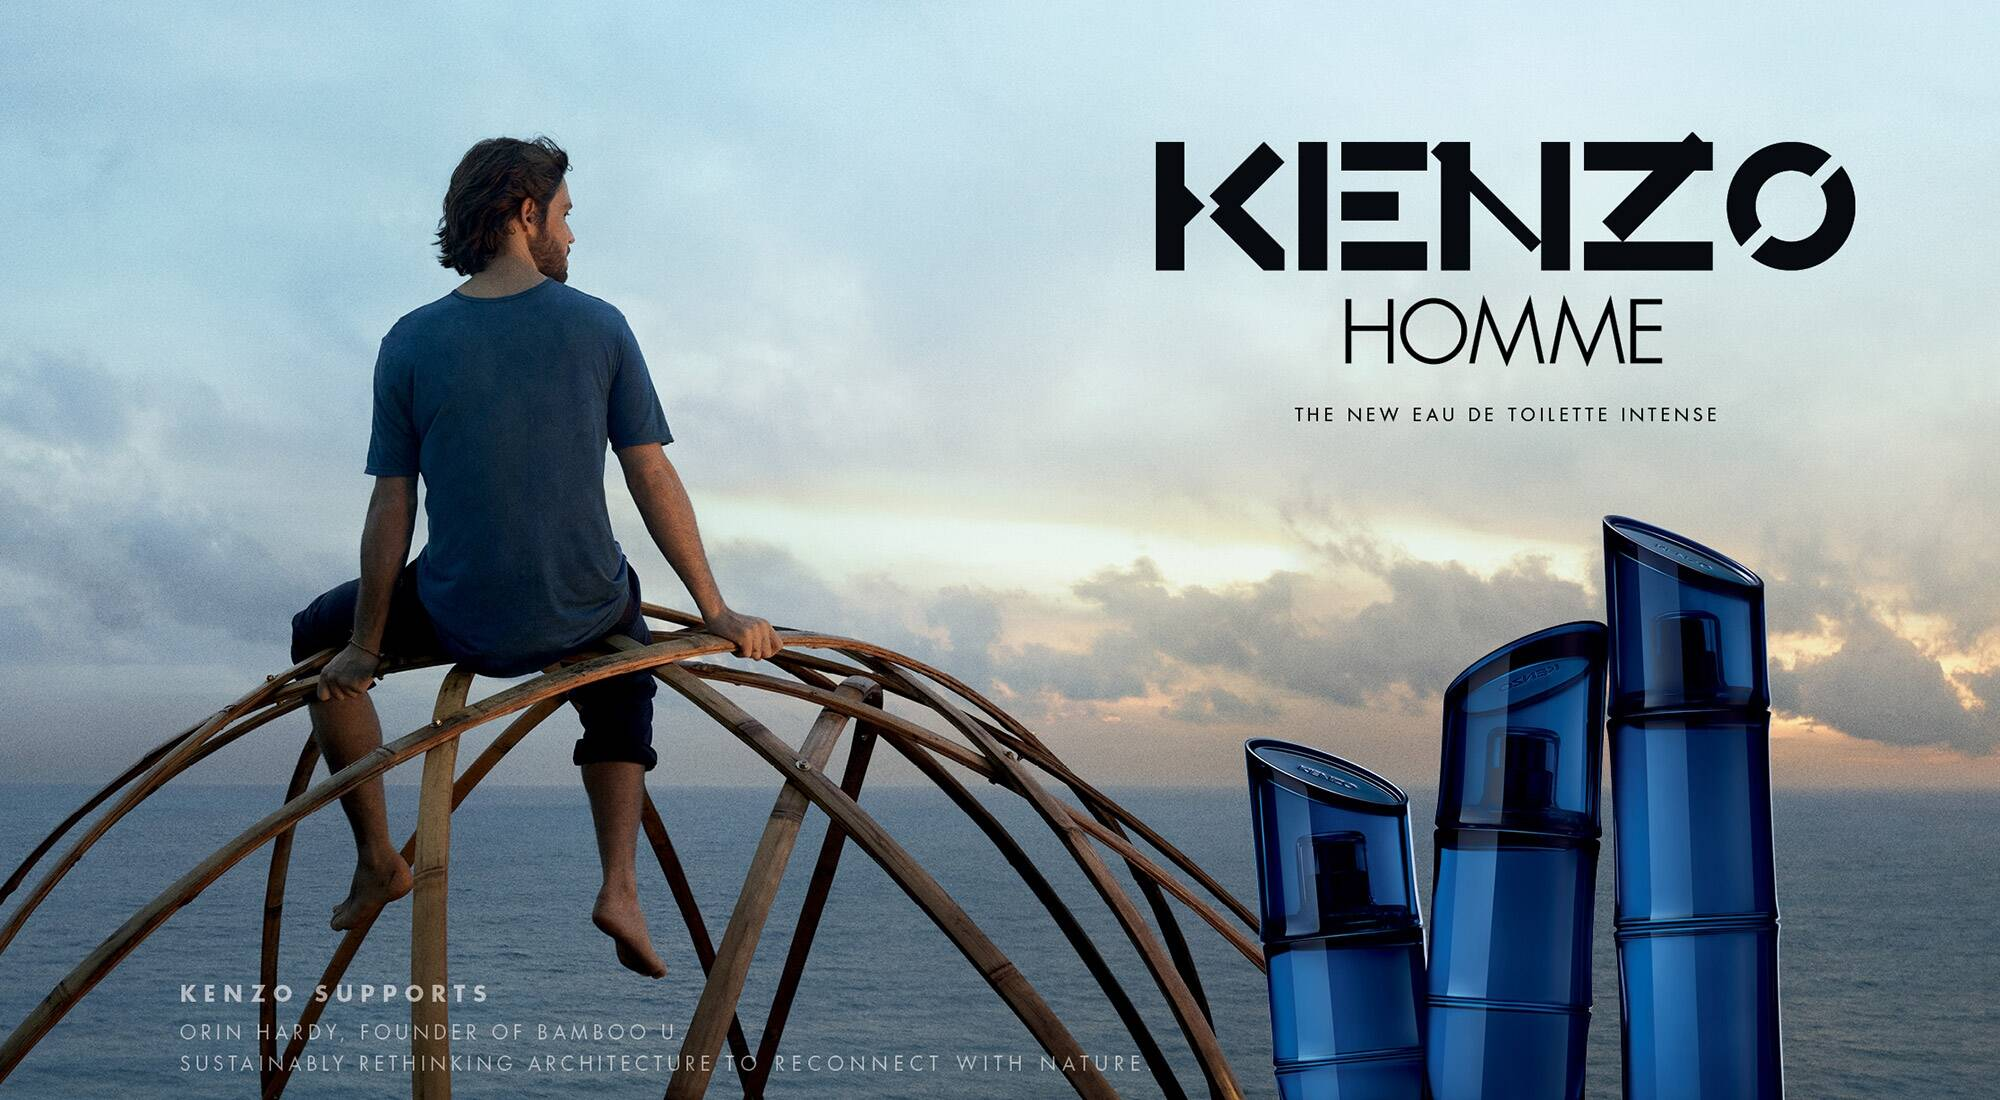 kenzo-homme-is-reimagined